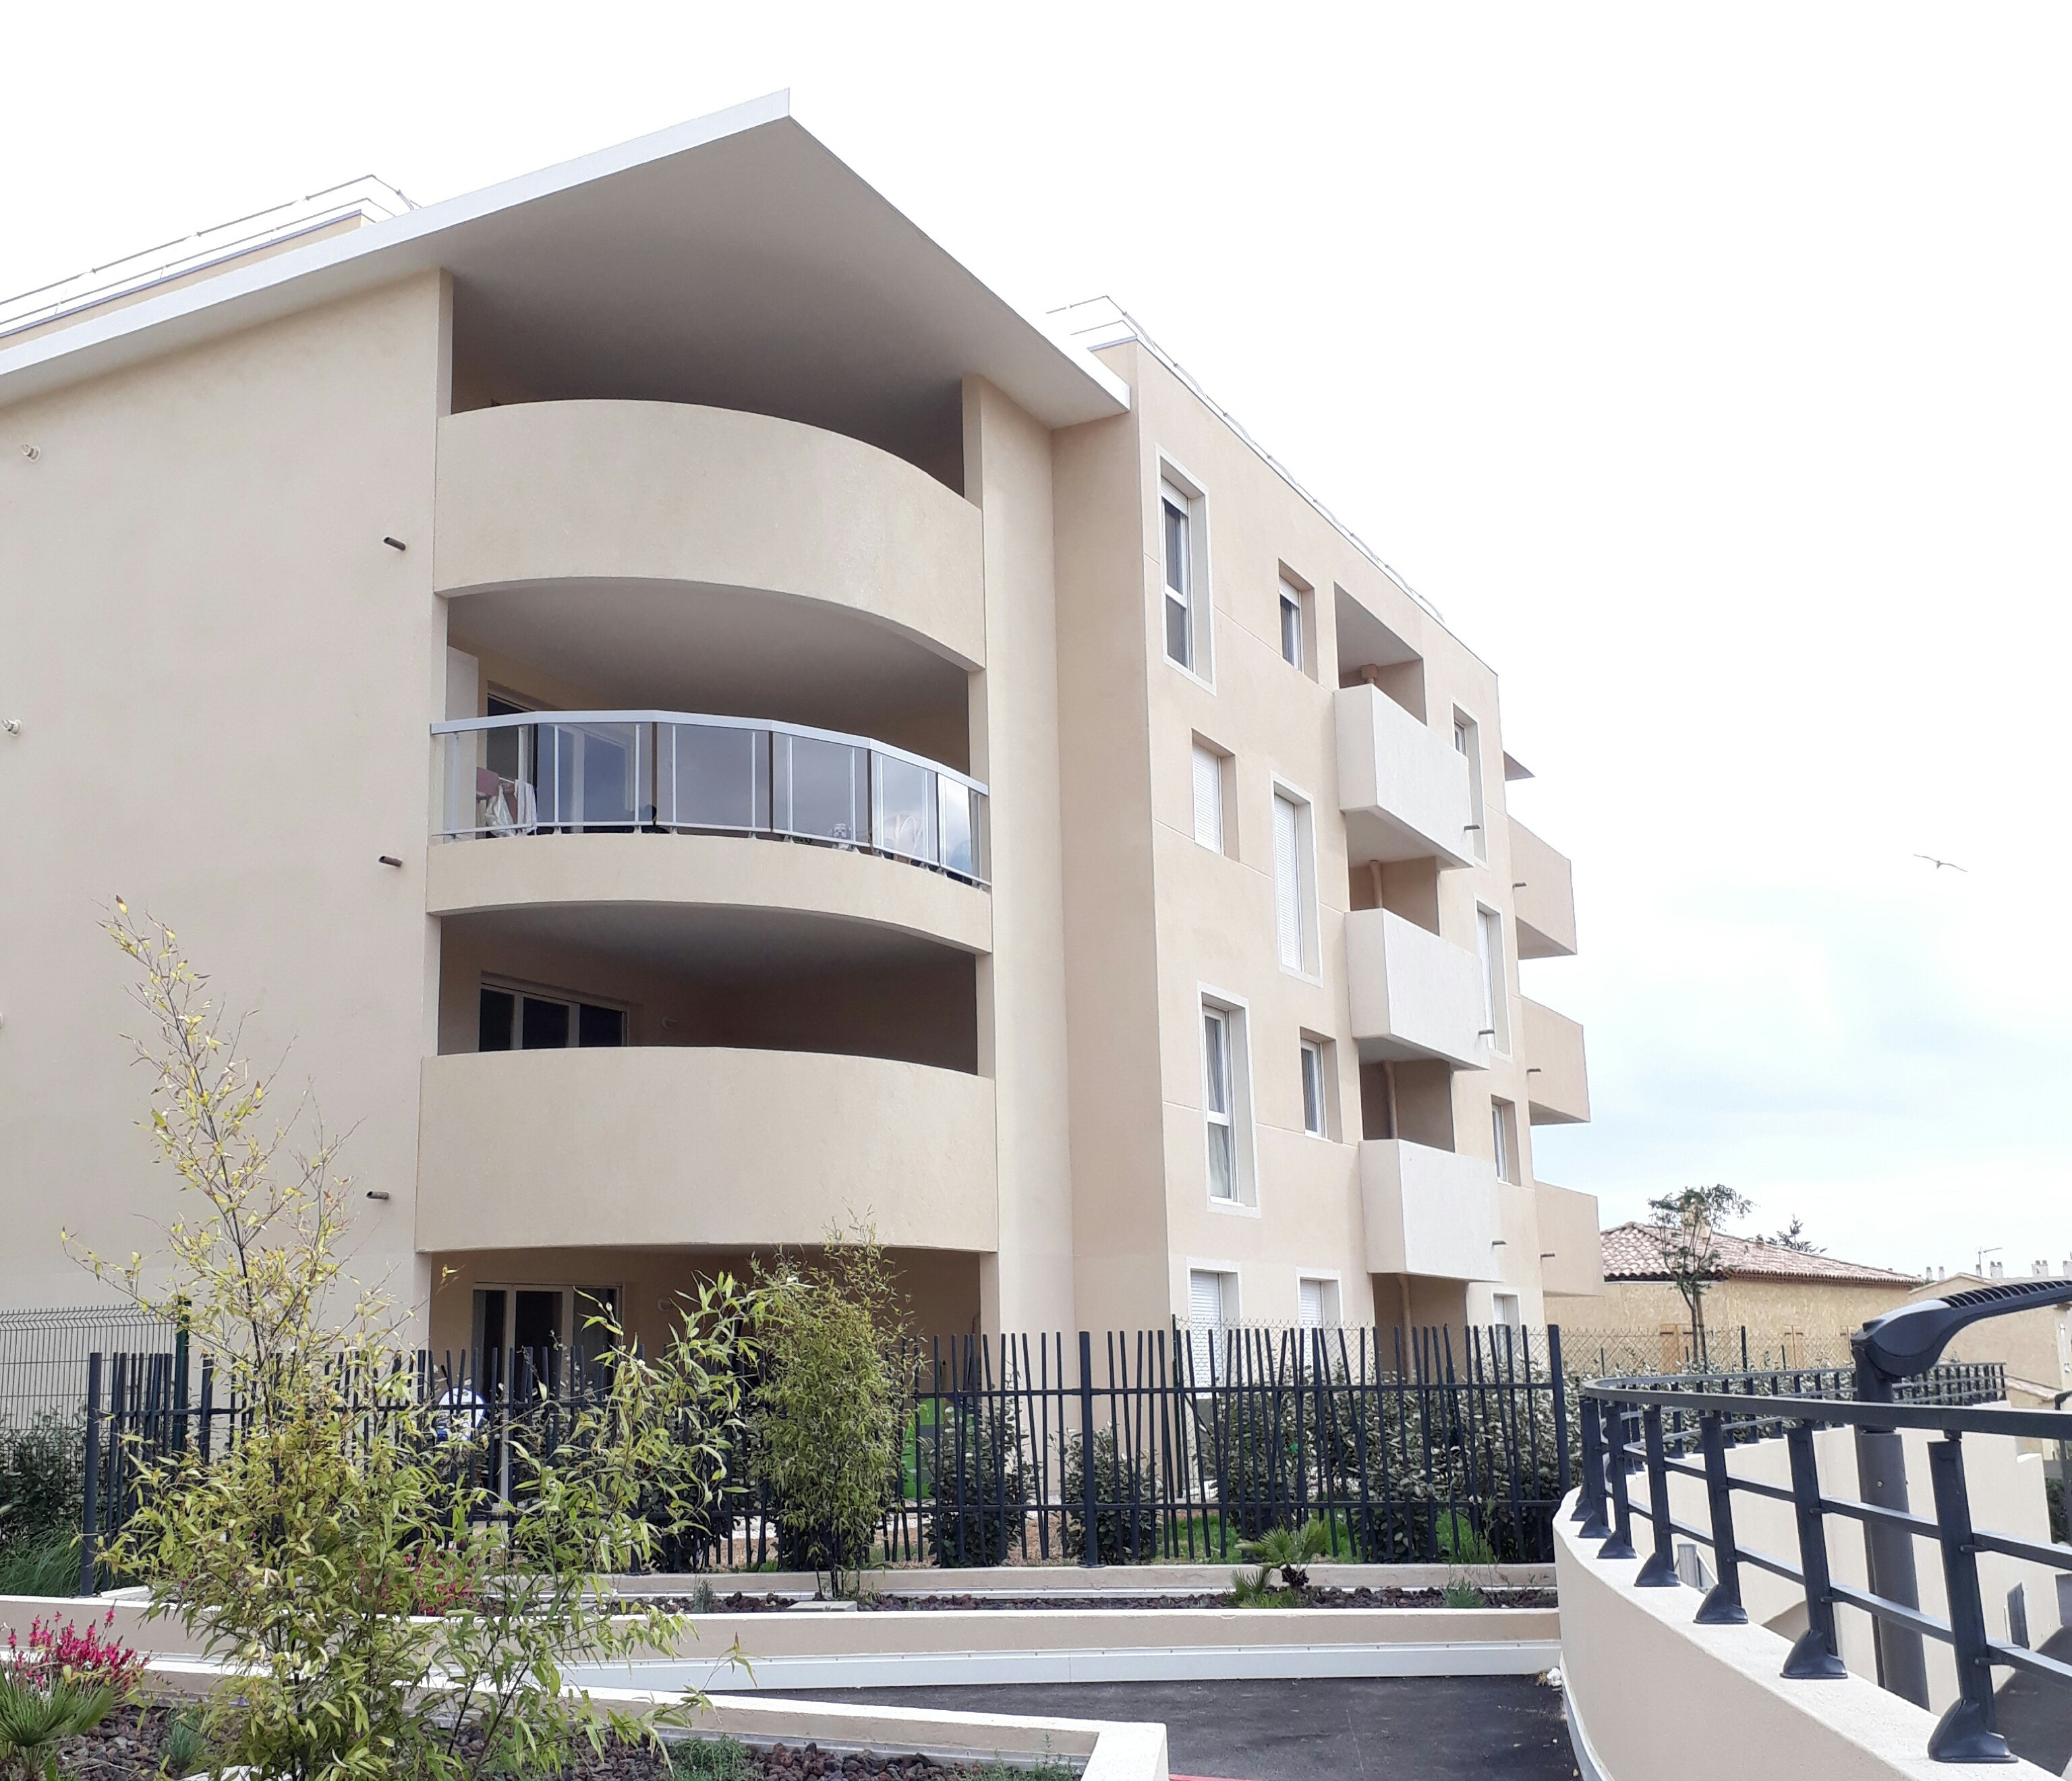 Location appartement à Seyne-sur-Mer, surface de 40.49m²